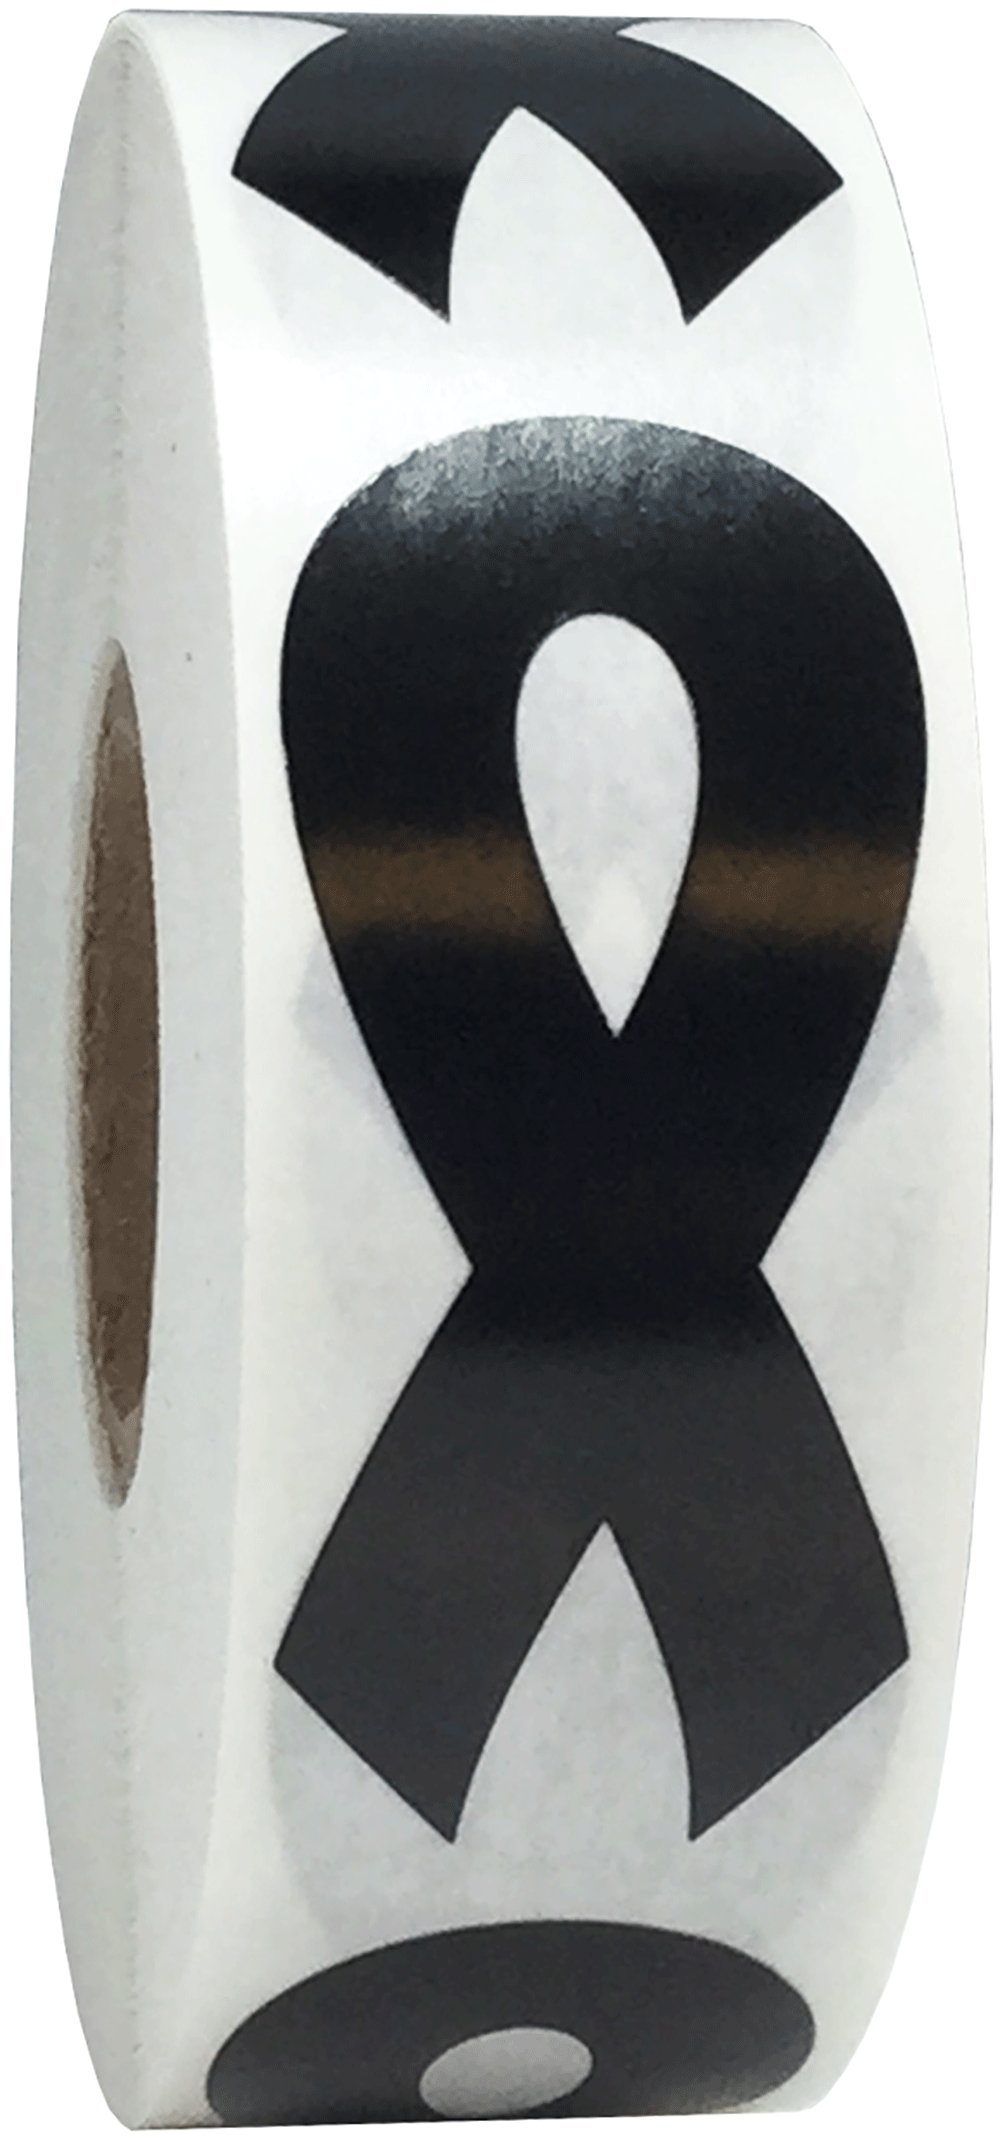 Black Awareness Ribbon Stickers 2 Inch 500 Total Adhesive Labels